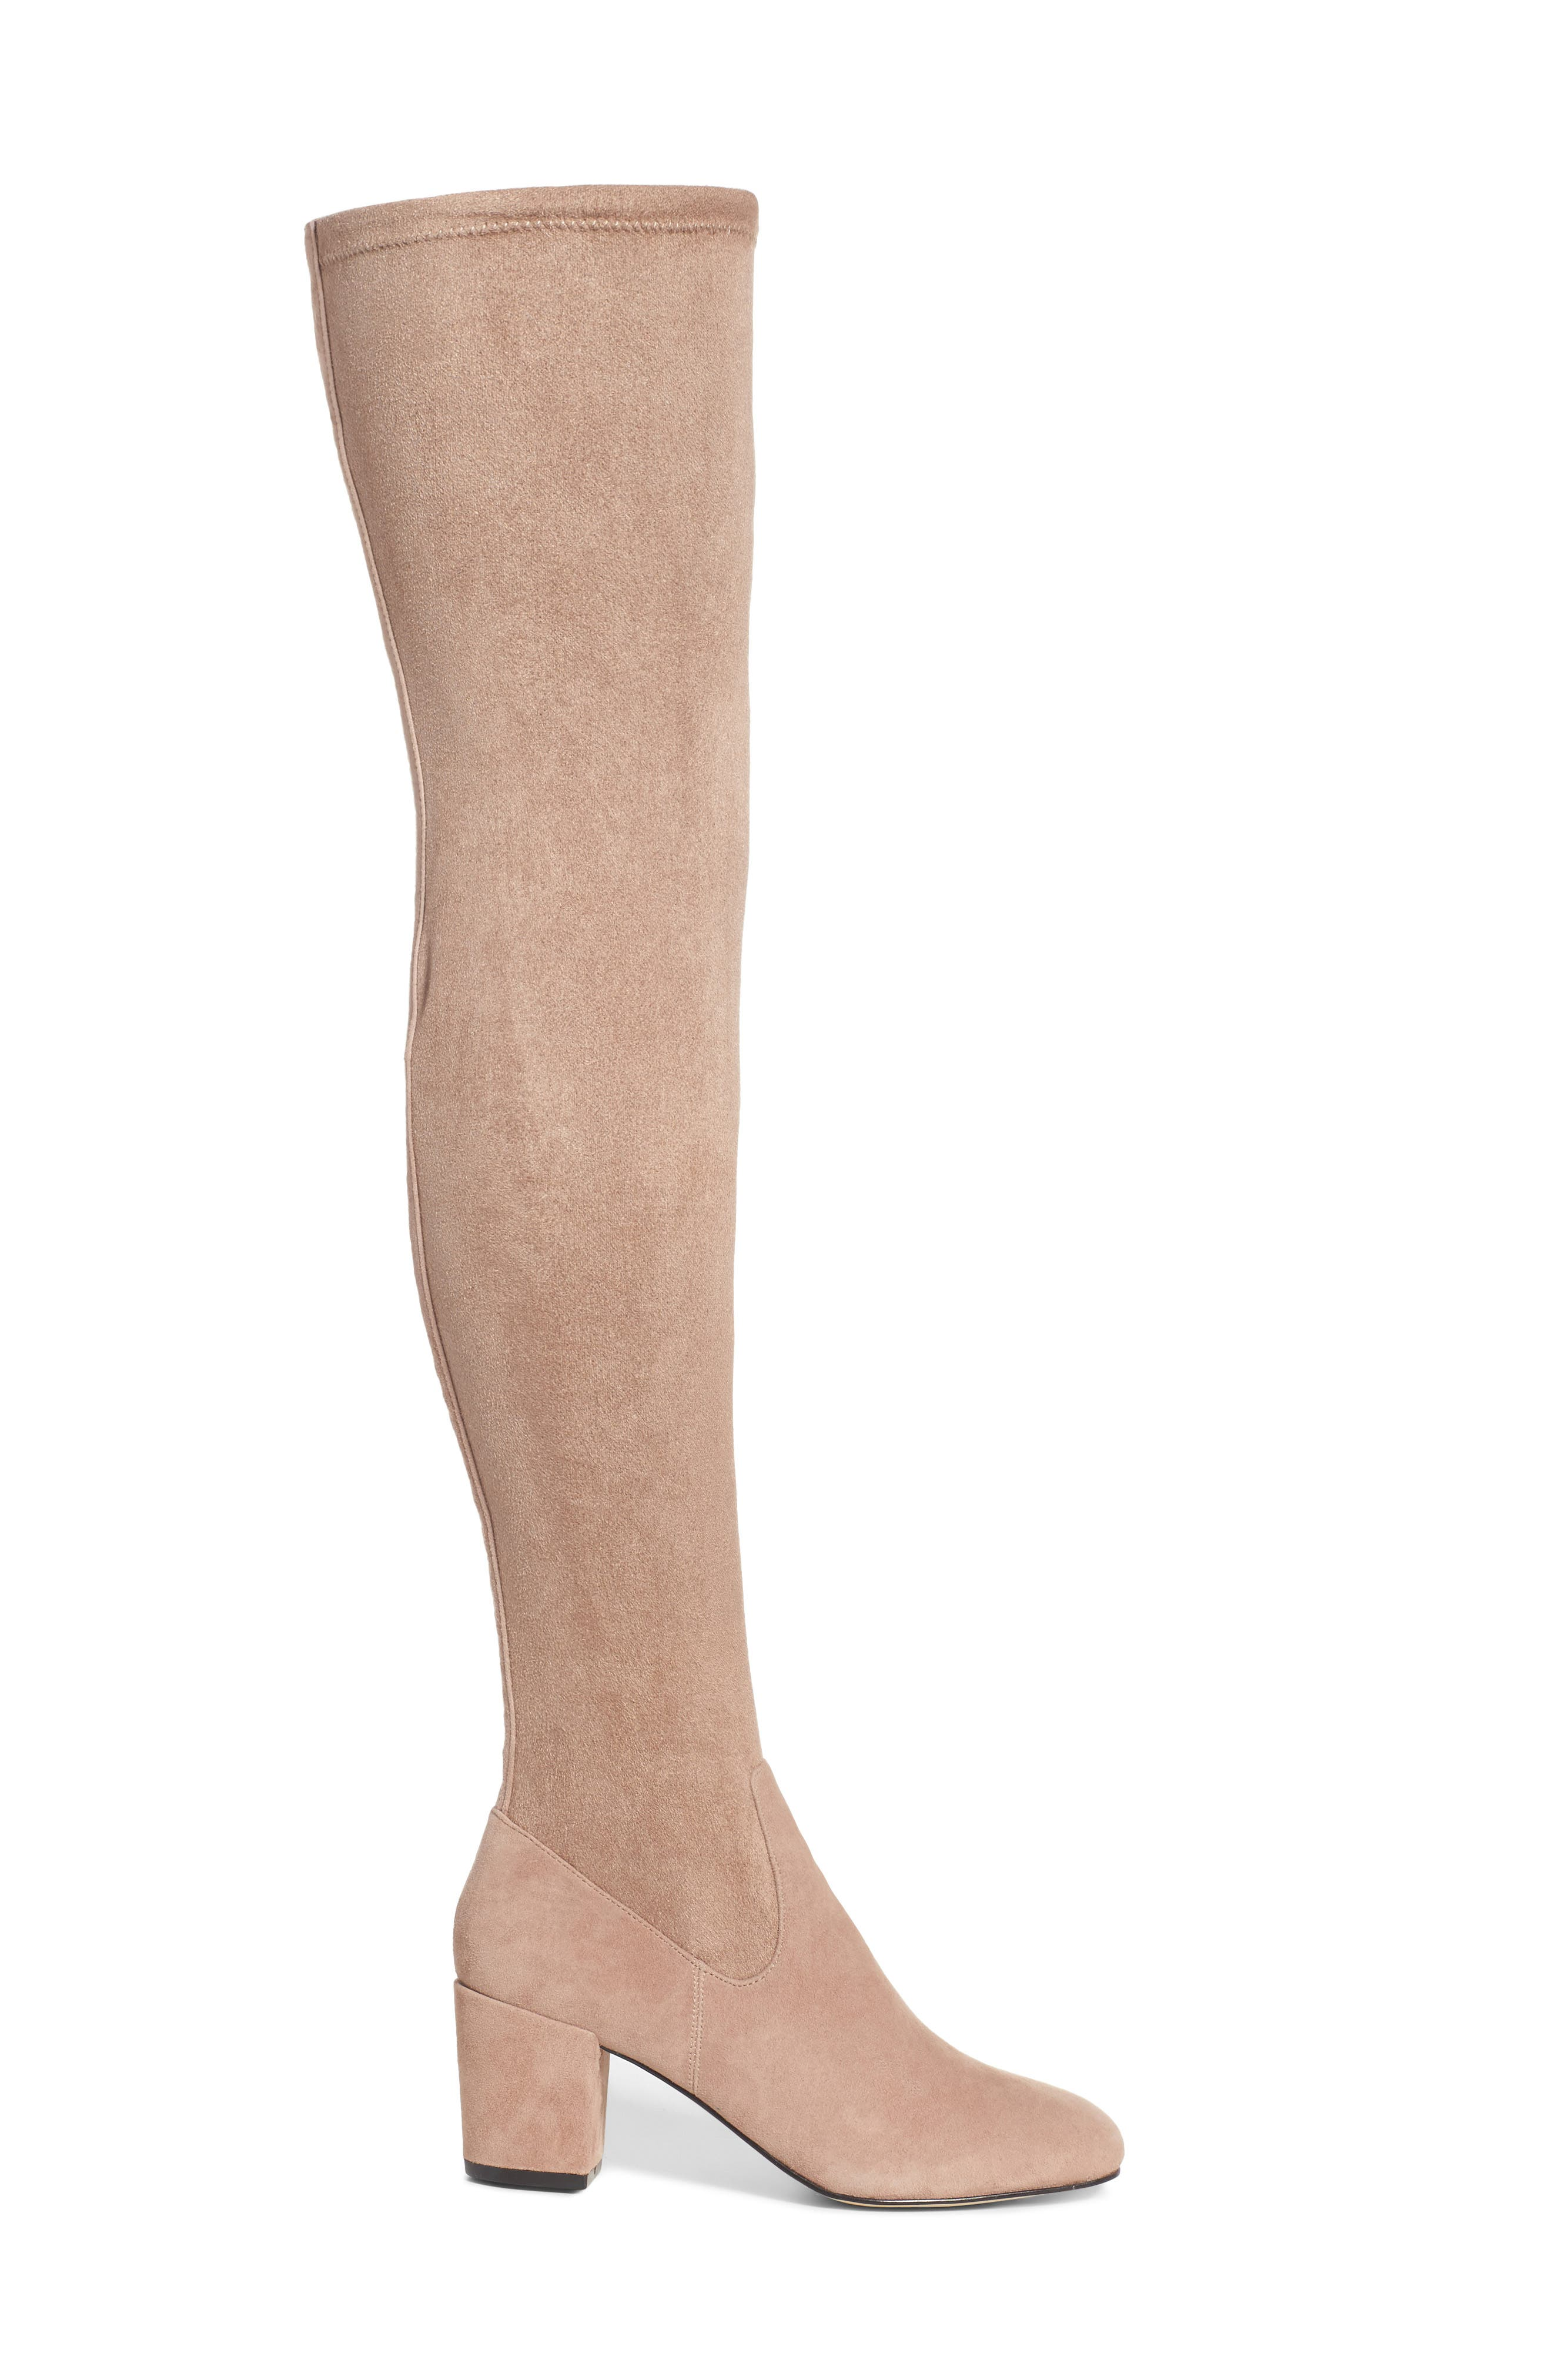 M4D3 Sobrina Over the Knee Boot,                             Alternate thumbnail 6, color,